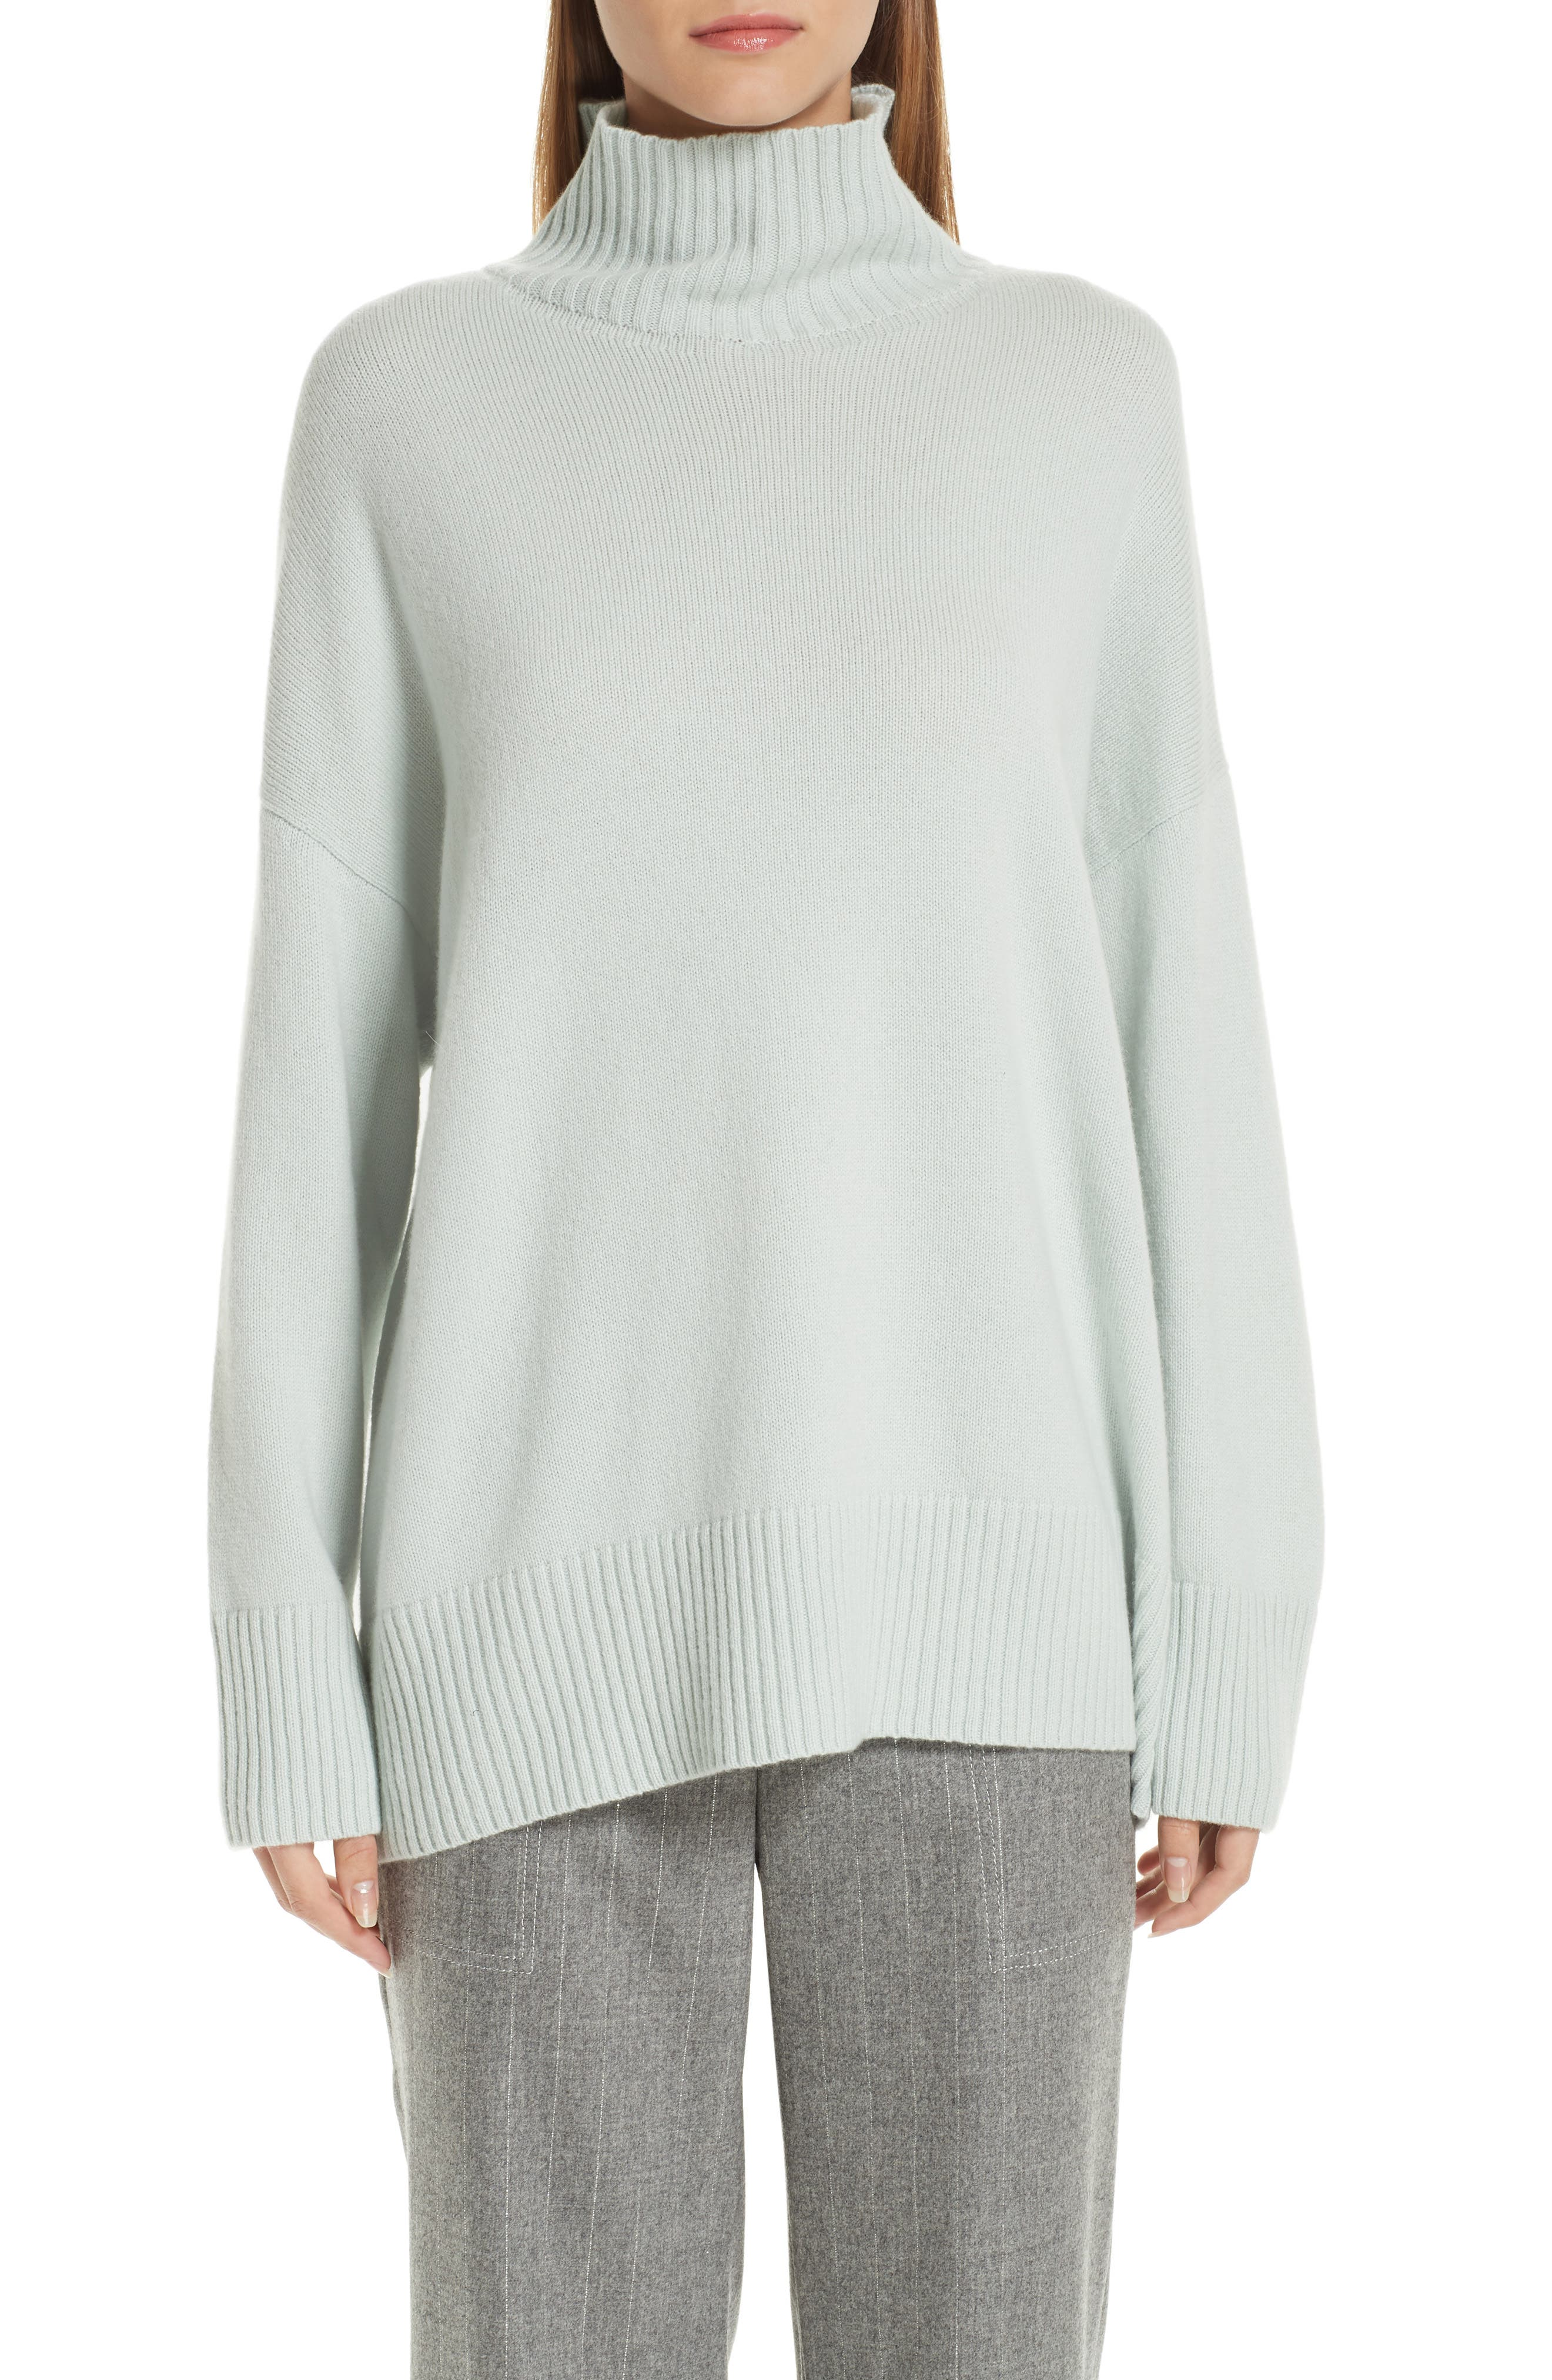 LAFAYETTE 148 NEW YORK Relaxed Cashmere Turtleneck Sweater, Main, color, 400